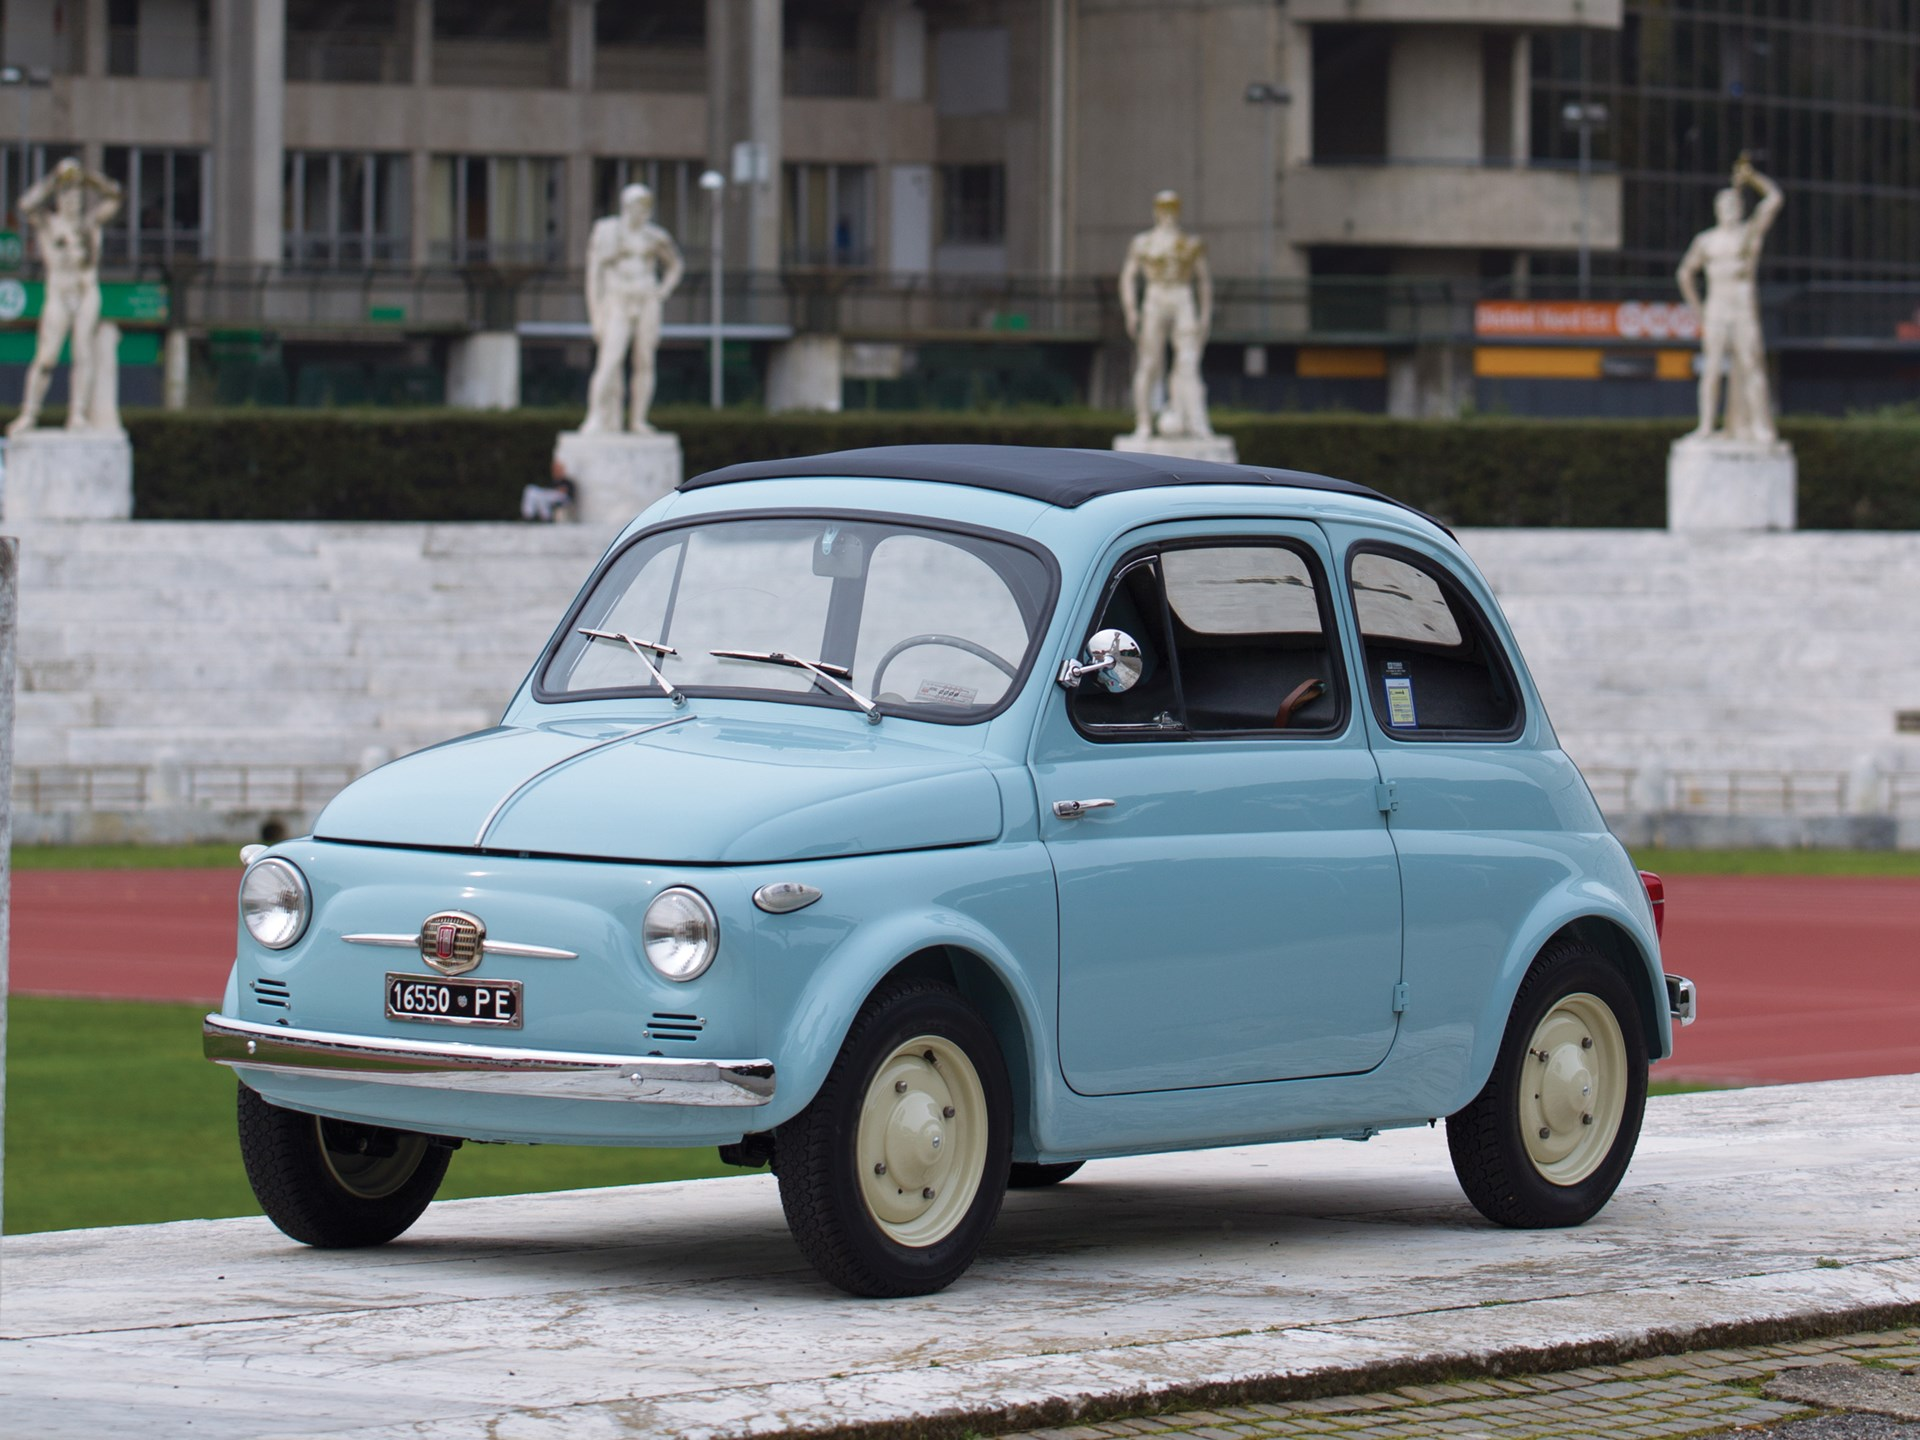 The tiny Fiat 500 has often been referred to as a  minicar due to small design